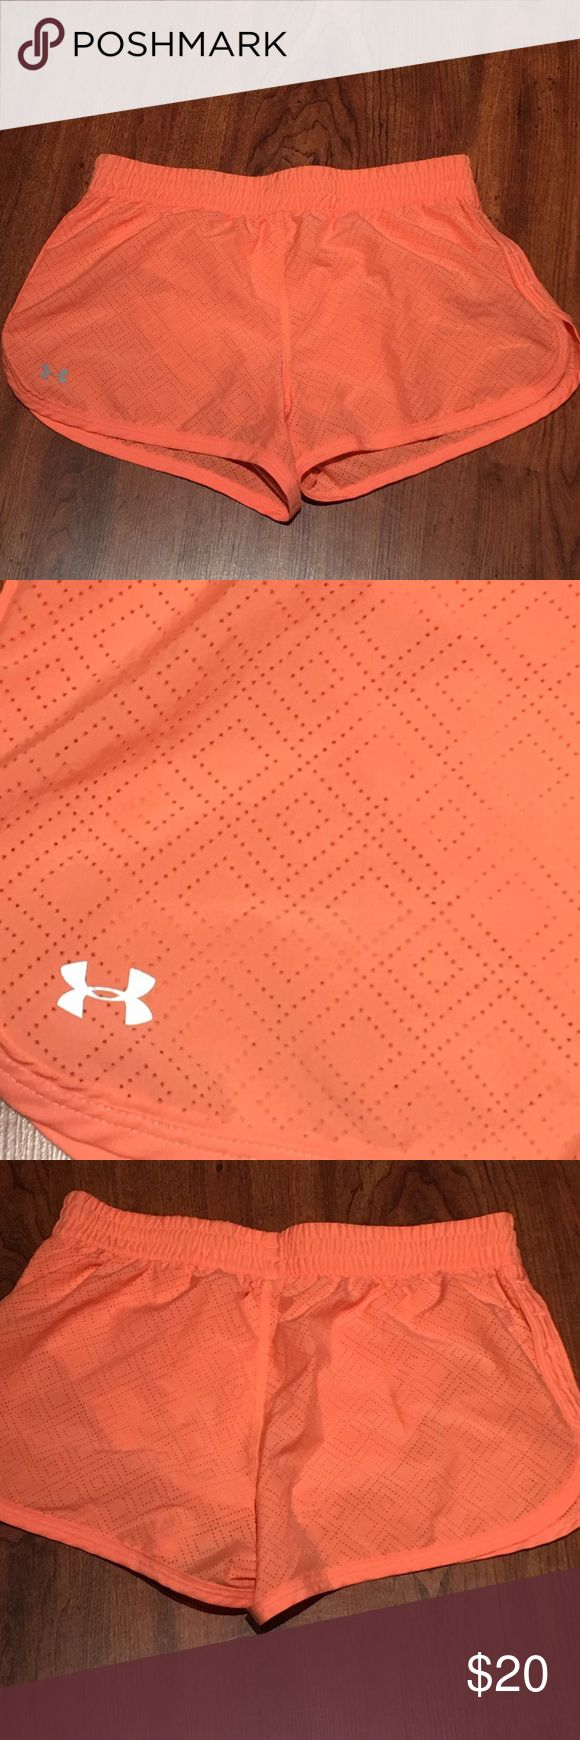 Under armour coral shorts Worn once and just too small :( love the color and design!! Under Armour Shorts